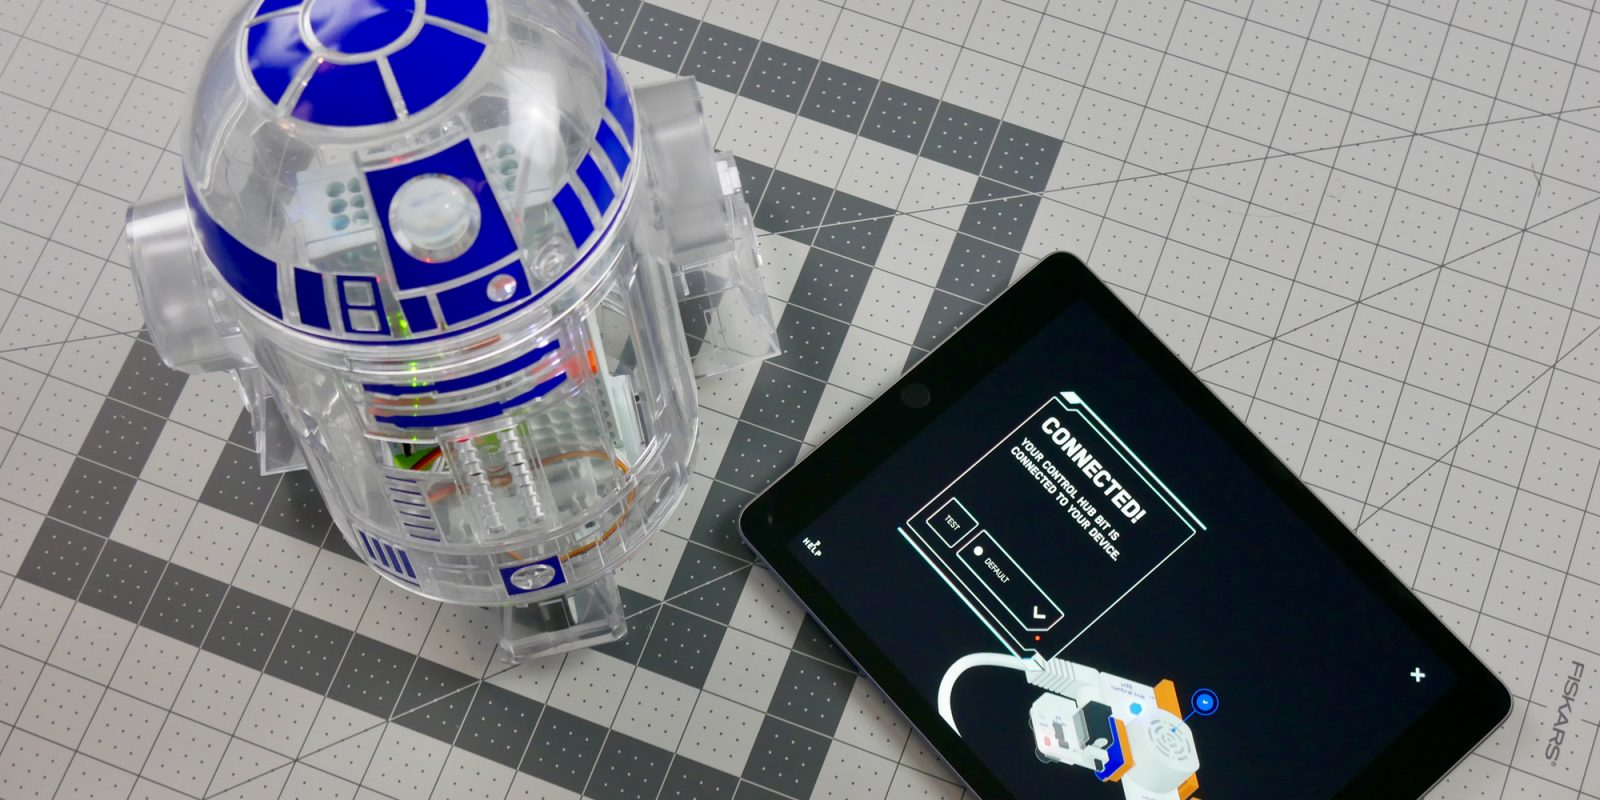 Coding can be fun with the littleBits Star Wars Droid Inventor Kit at $74.50